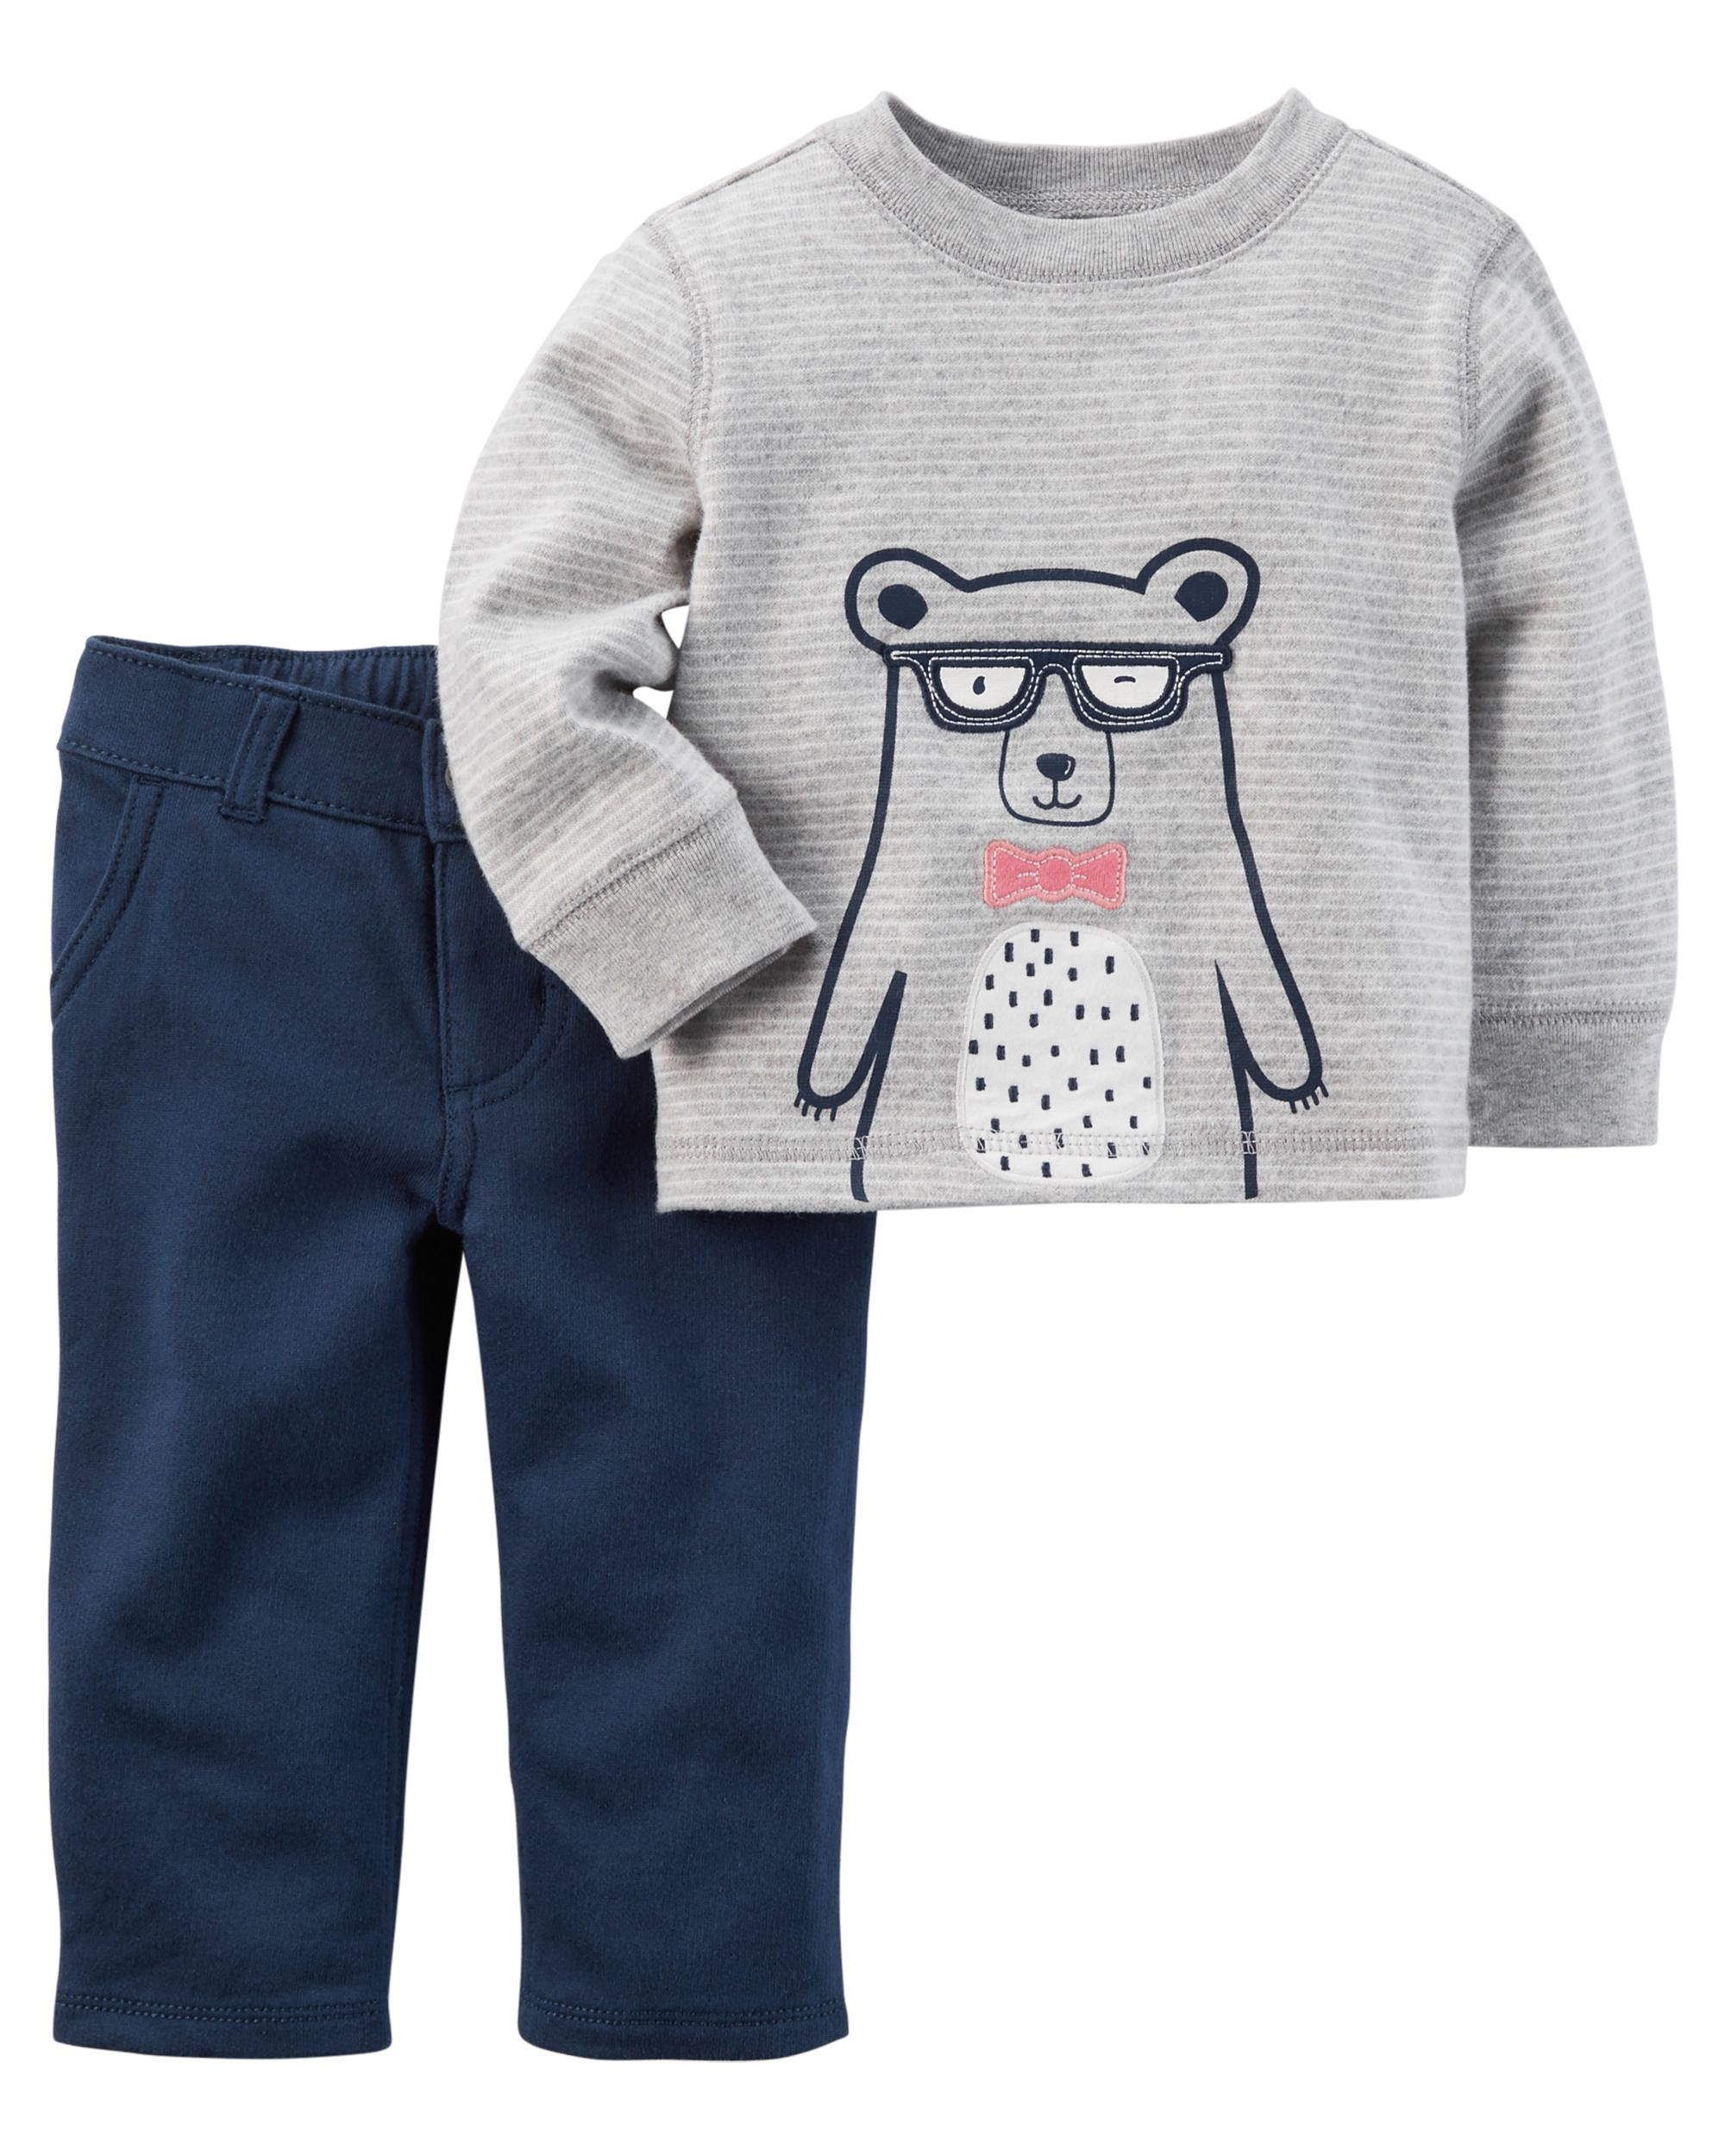 Your little cub will look extra cute in this boys  Carter s bear graphic  tee and French terry pants set. e06e6207d023